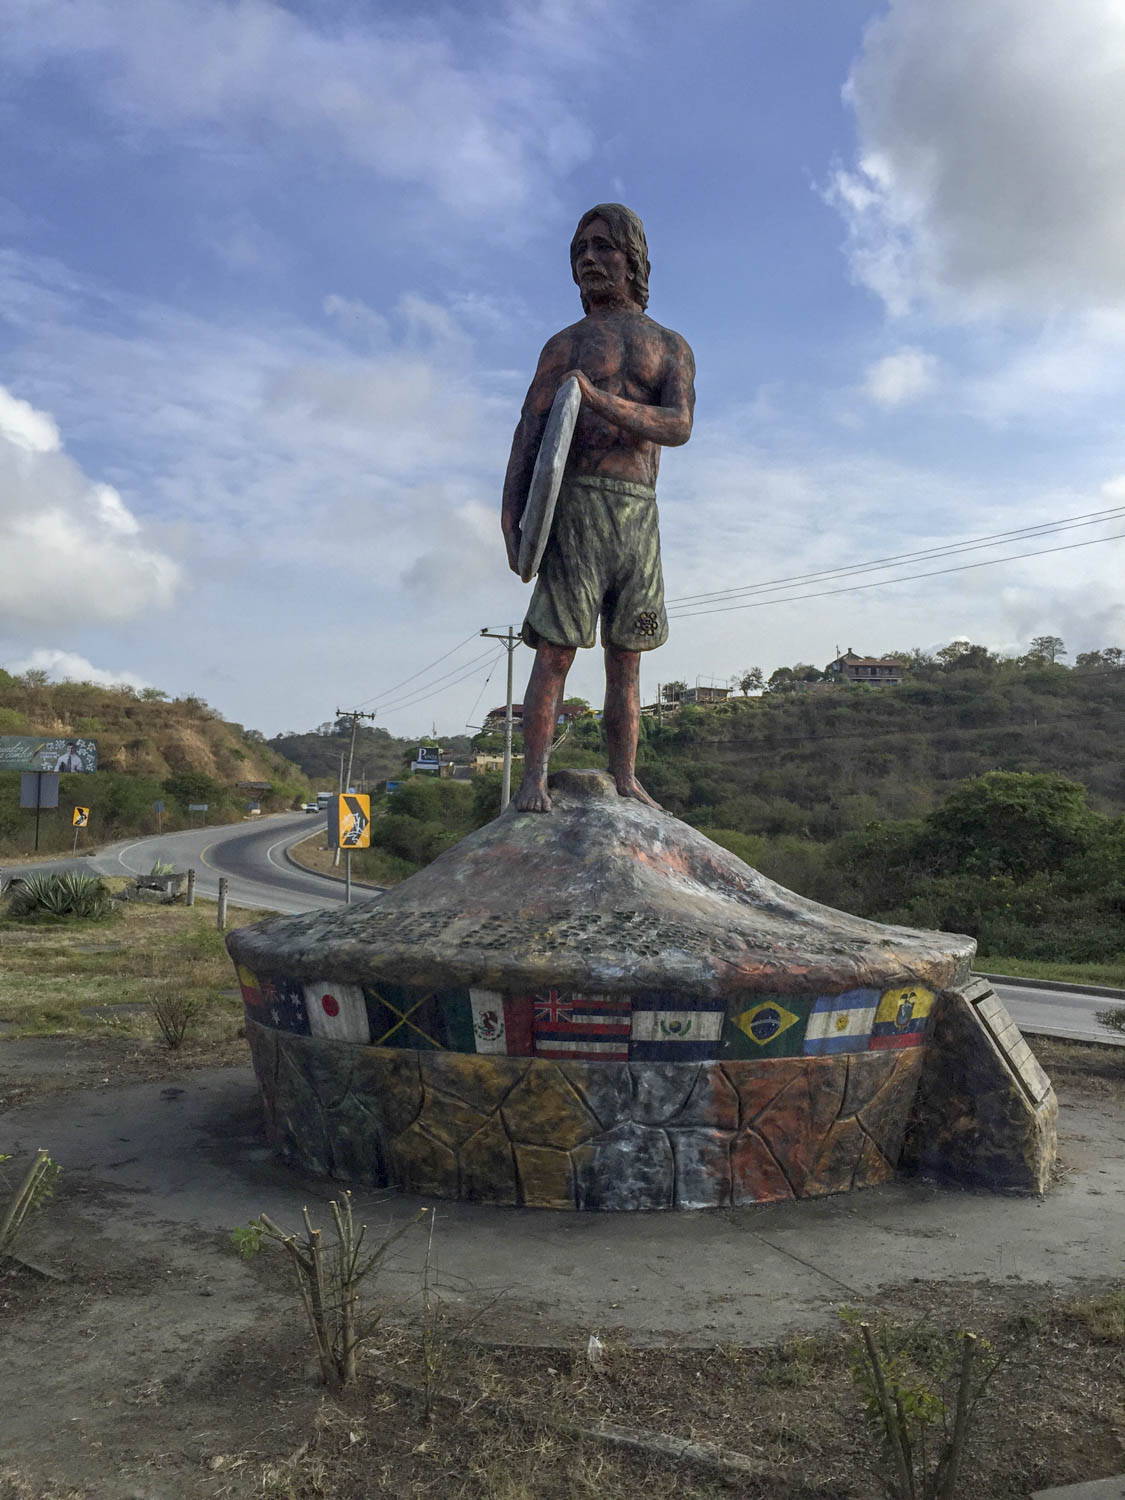 A friendly statue welcomes you to the surfer's parking lot where we got robbed